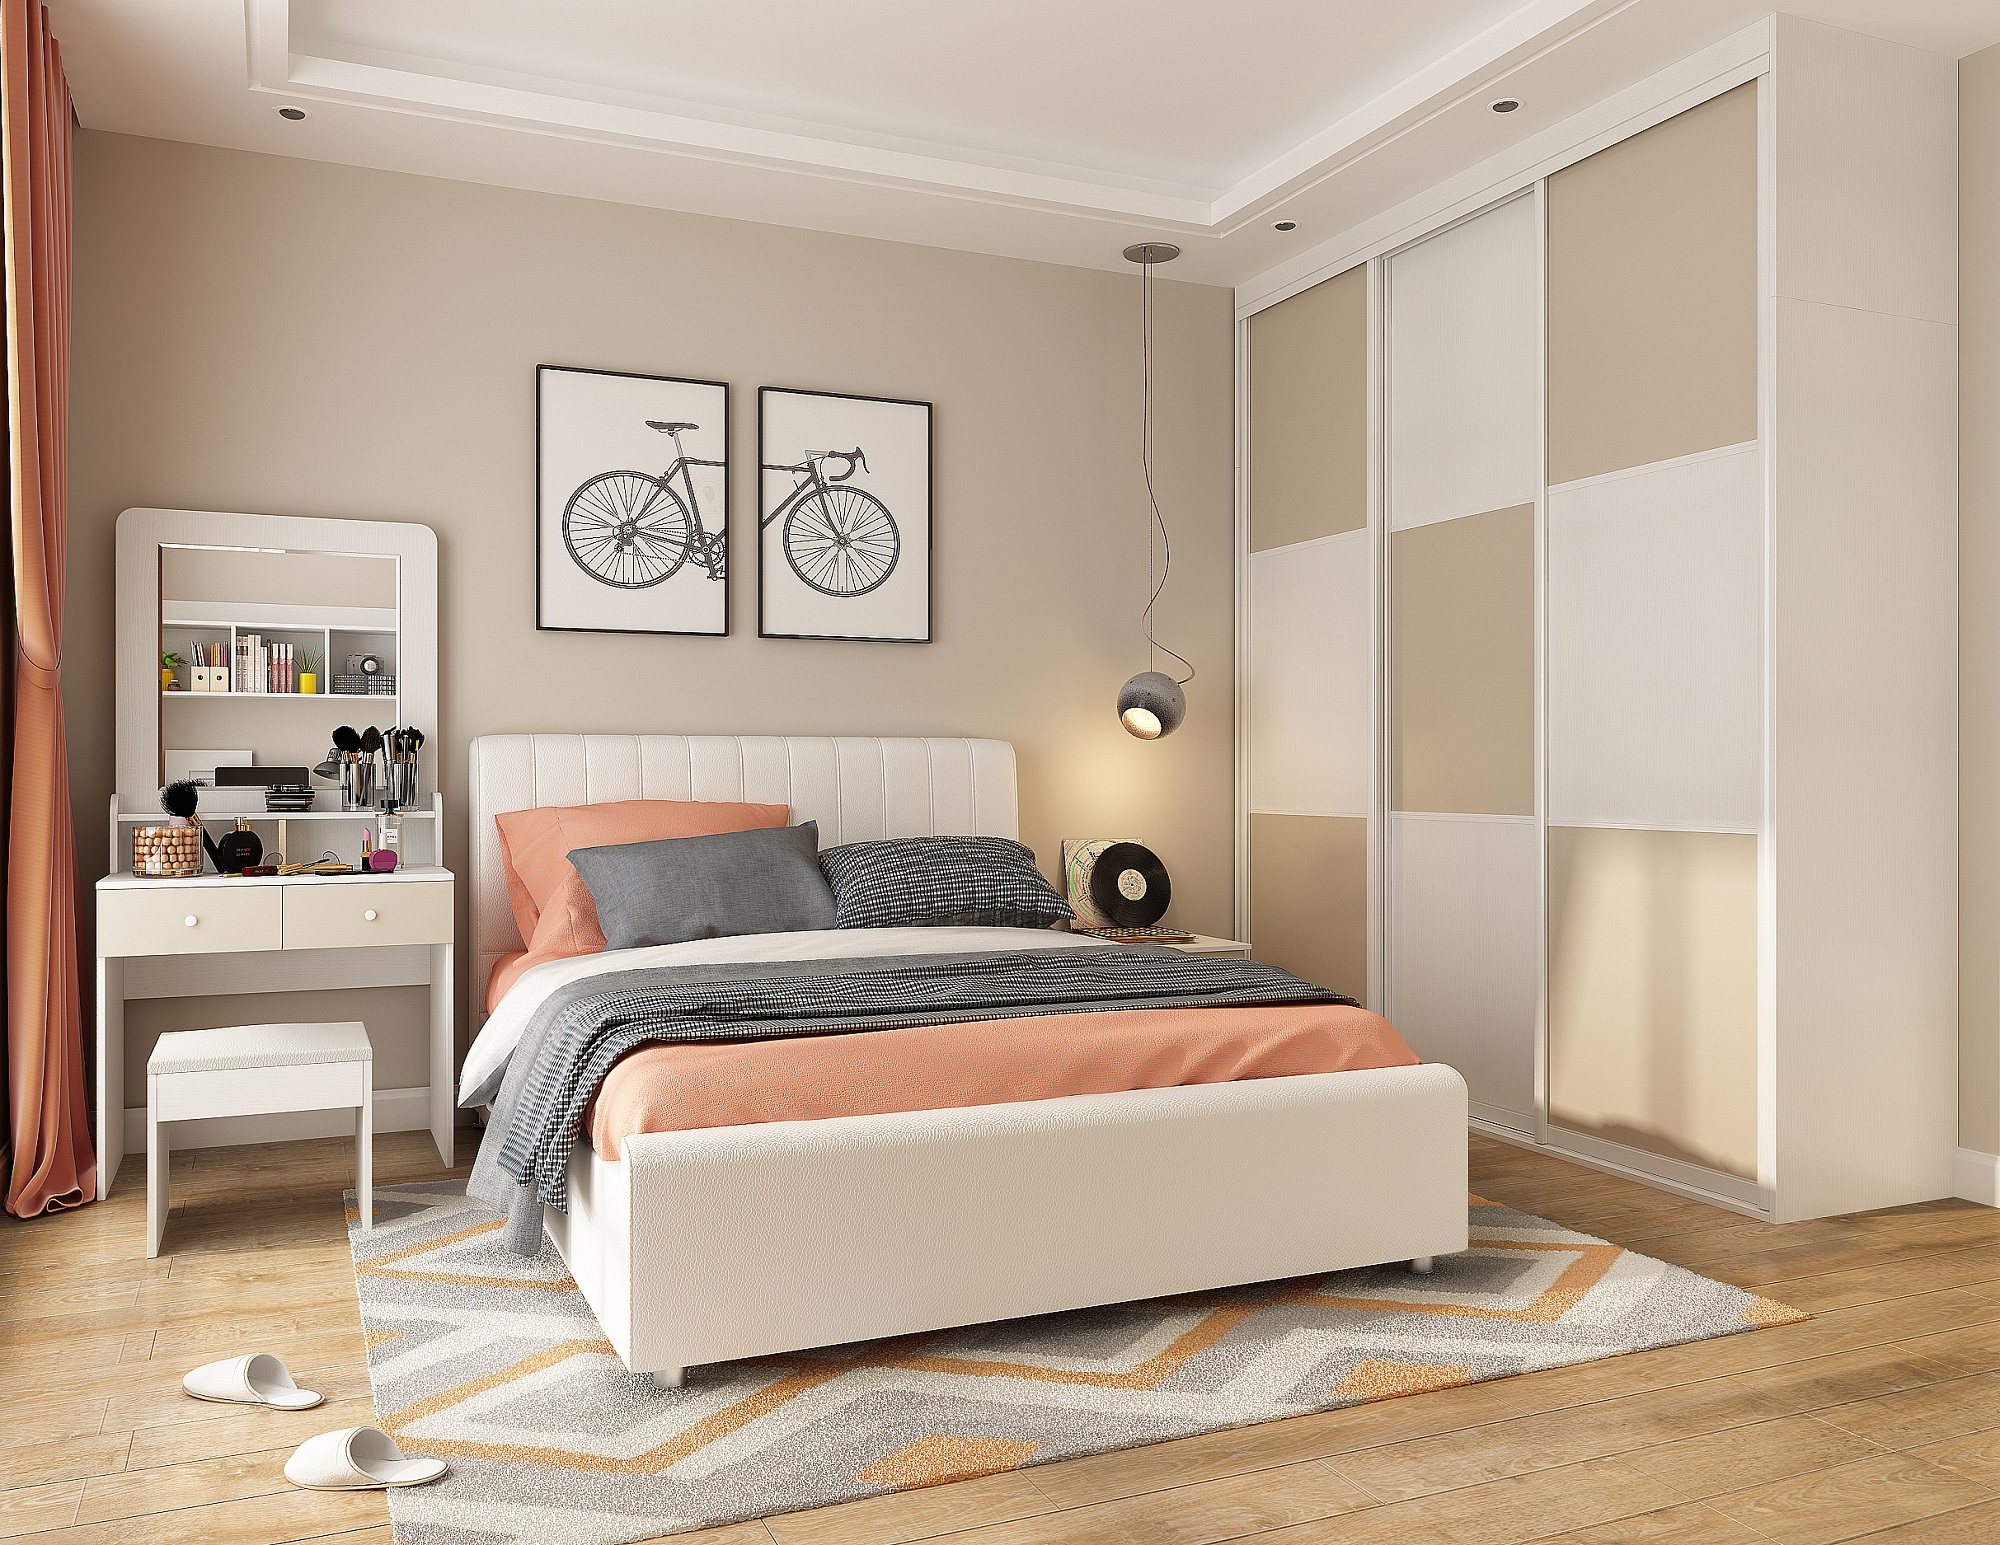 The Secret to the Decoration of Small-sized Bedroom. How to Design a 10㎡ Bedroom?